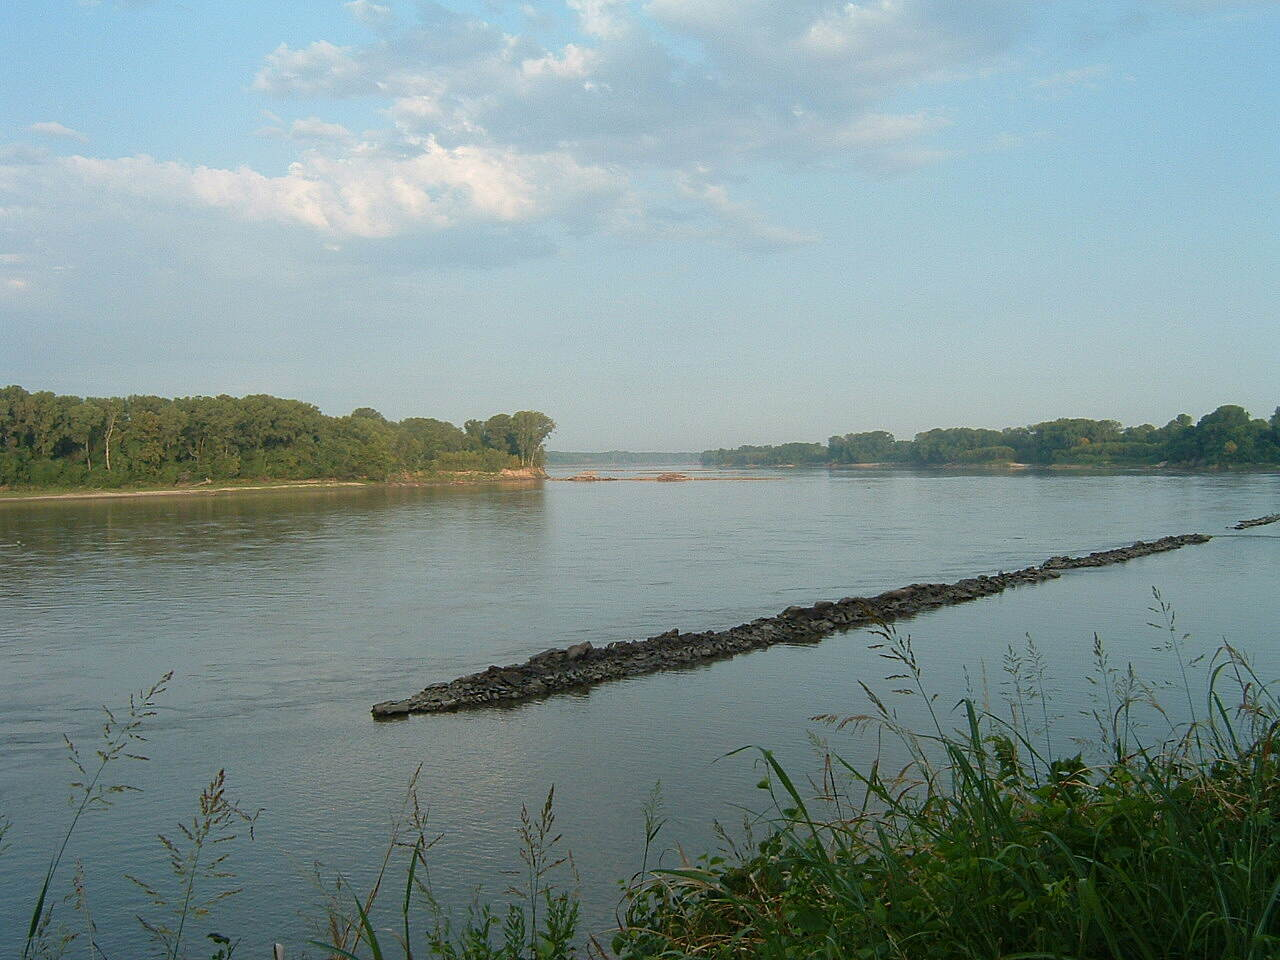 Katy Trail State Park Missouri River at Rocheport View of Missouri River east of Rocheport with groins placed by Corps of Engineers to control current.